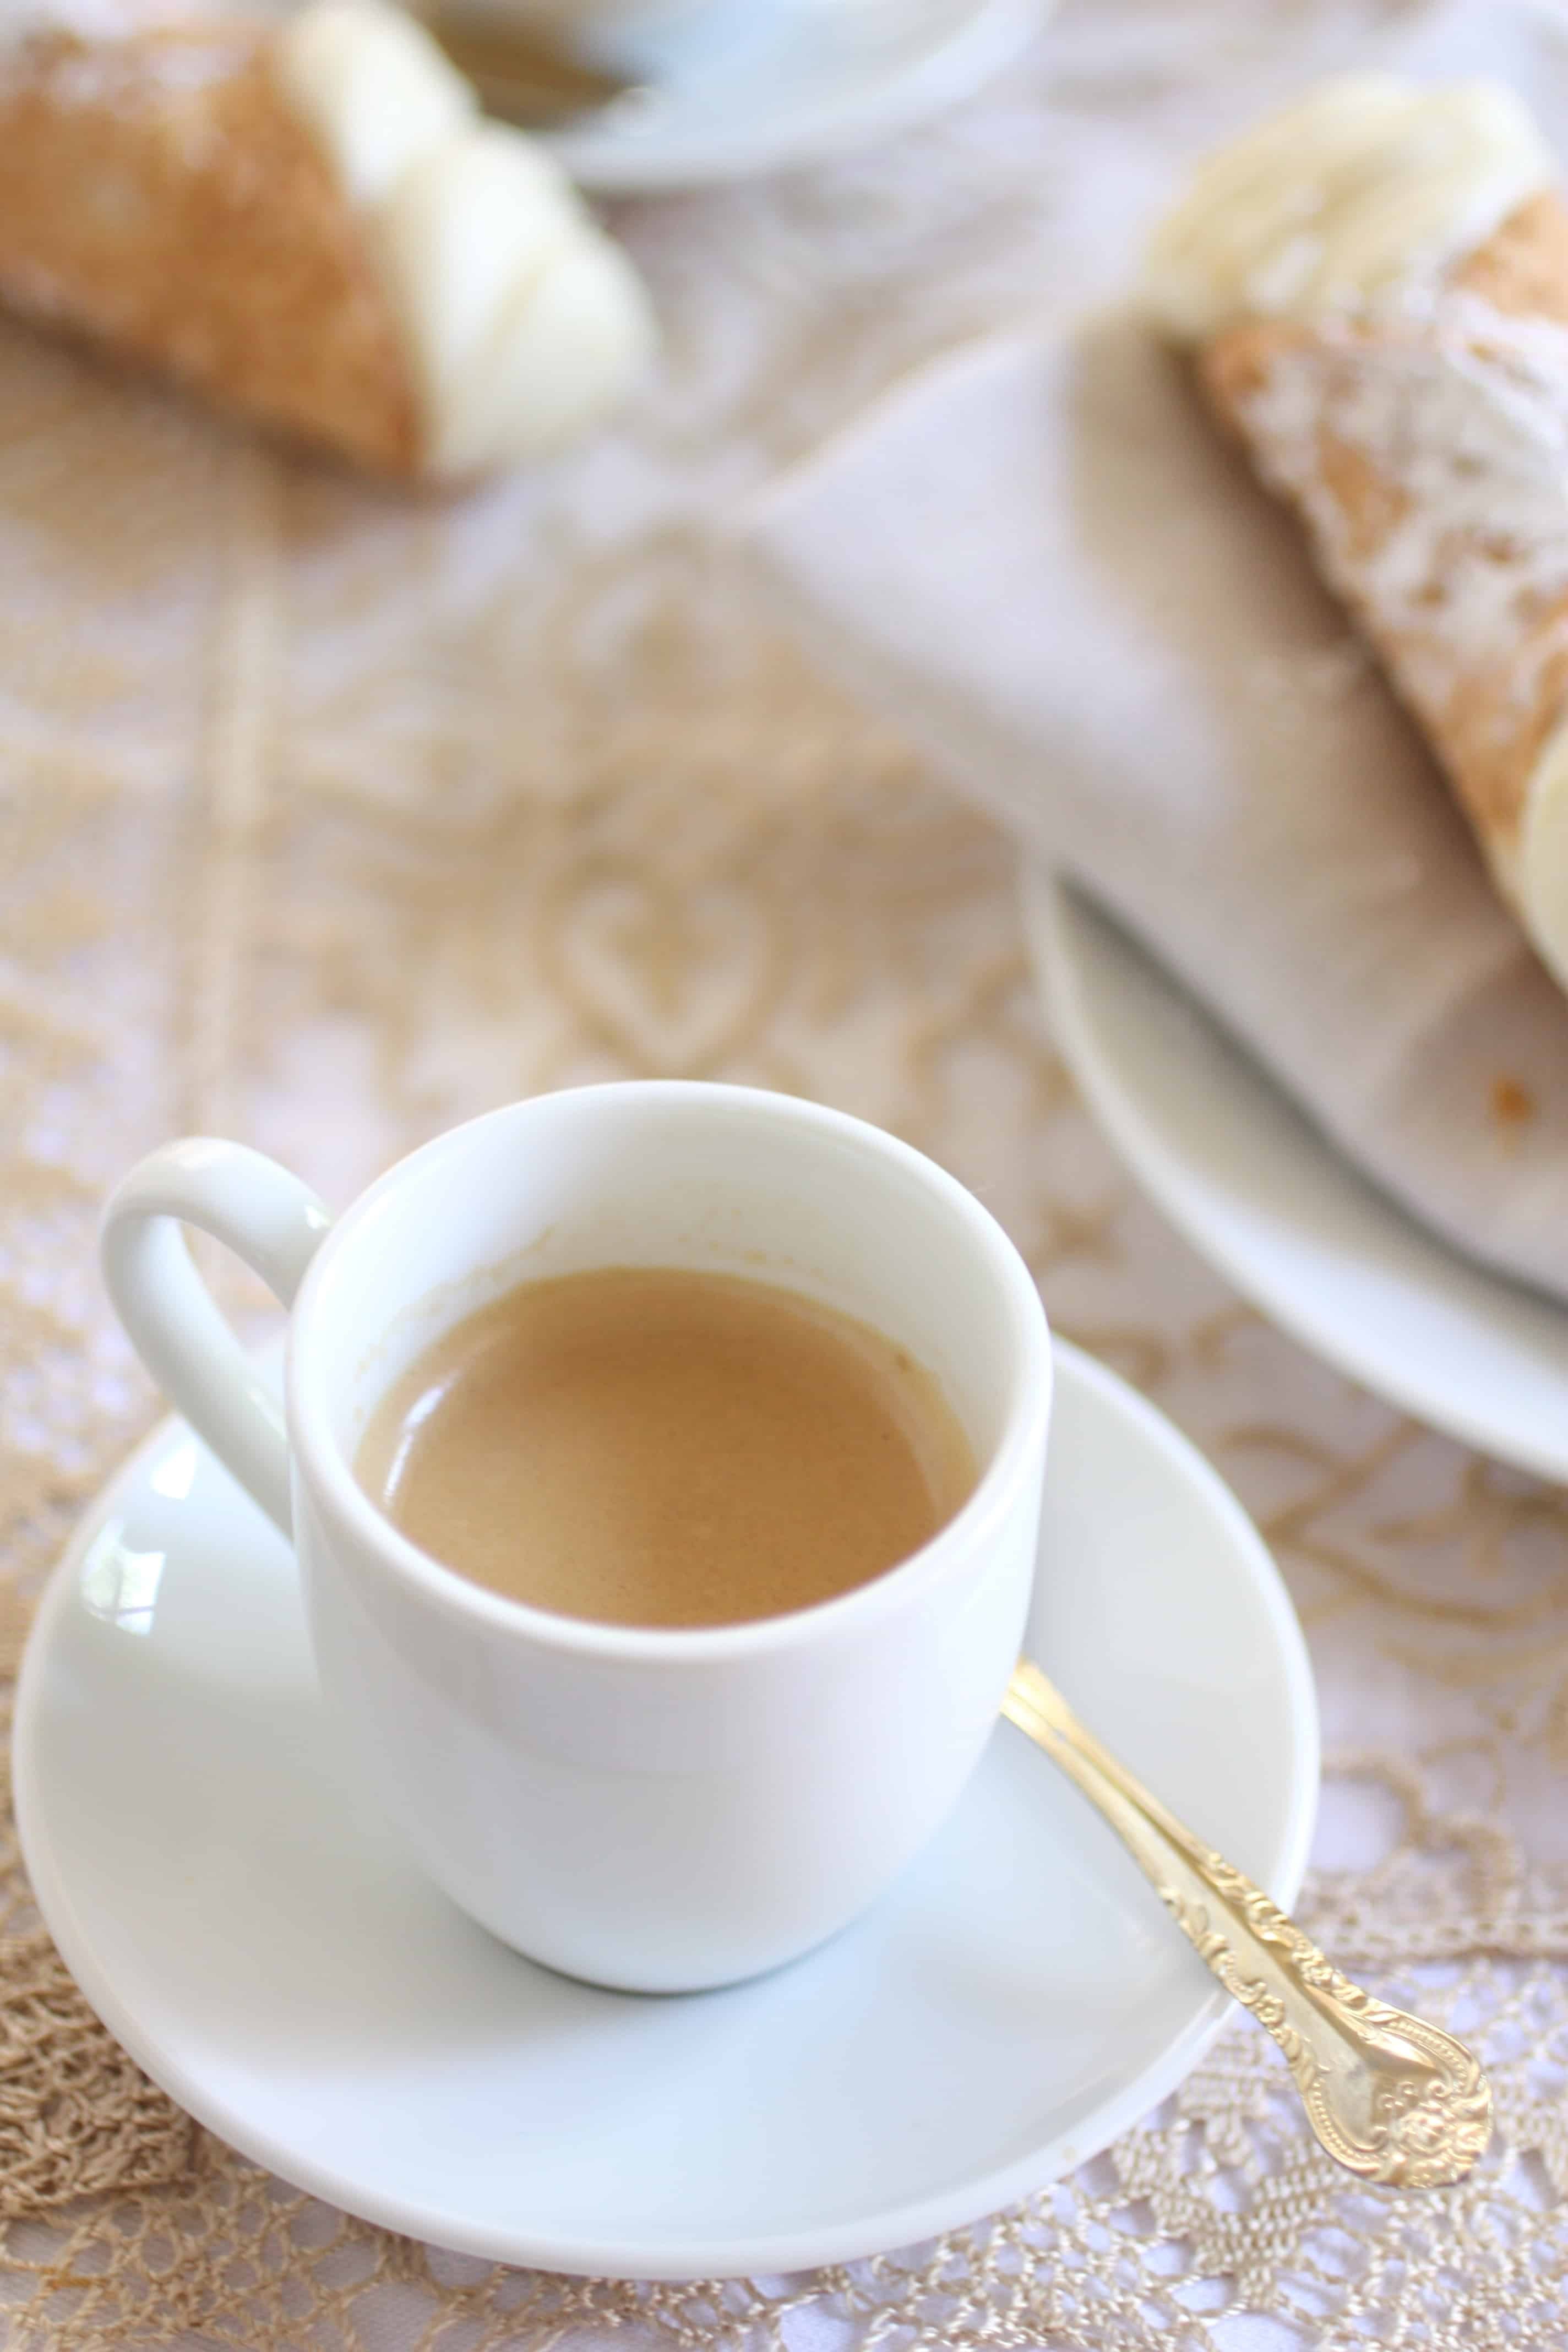 Learn How to Make Authentic Italian Coffee